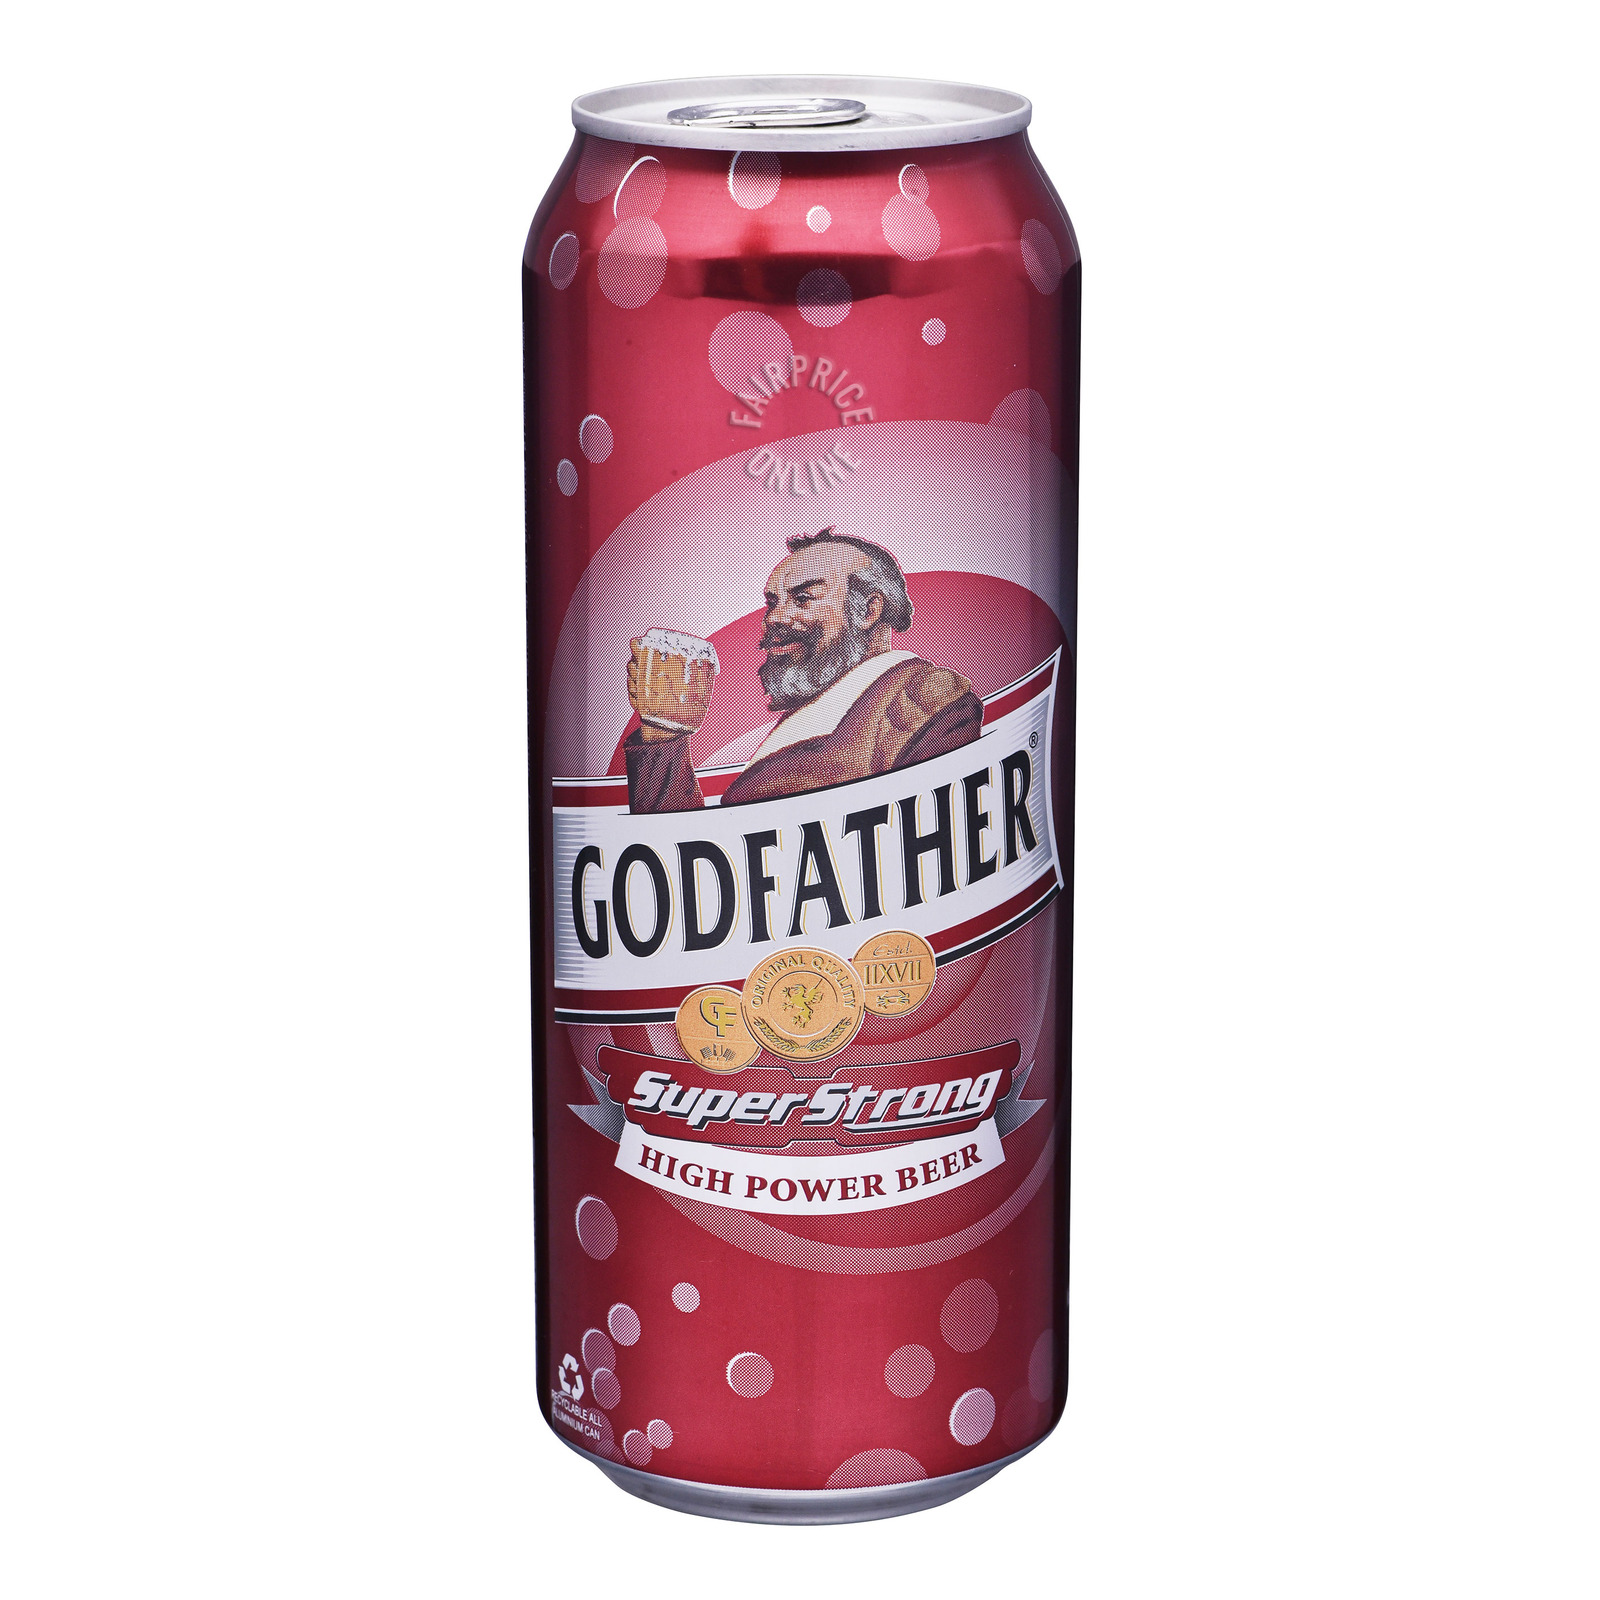 Godfather High Power Can Beer - Super Strong